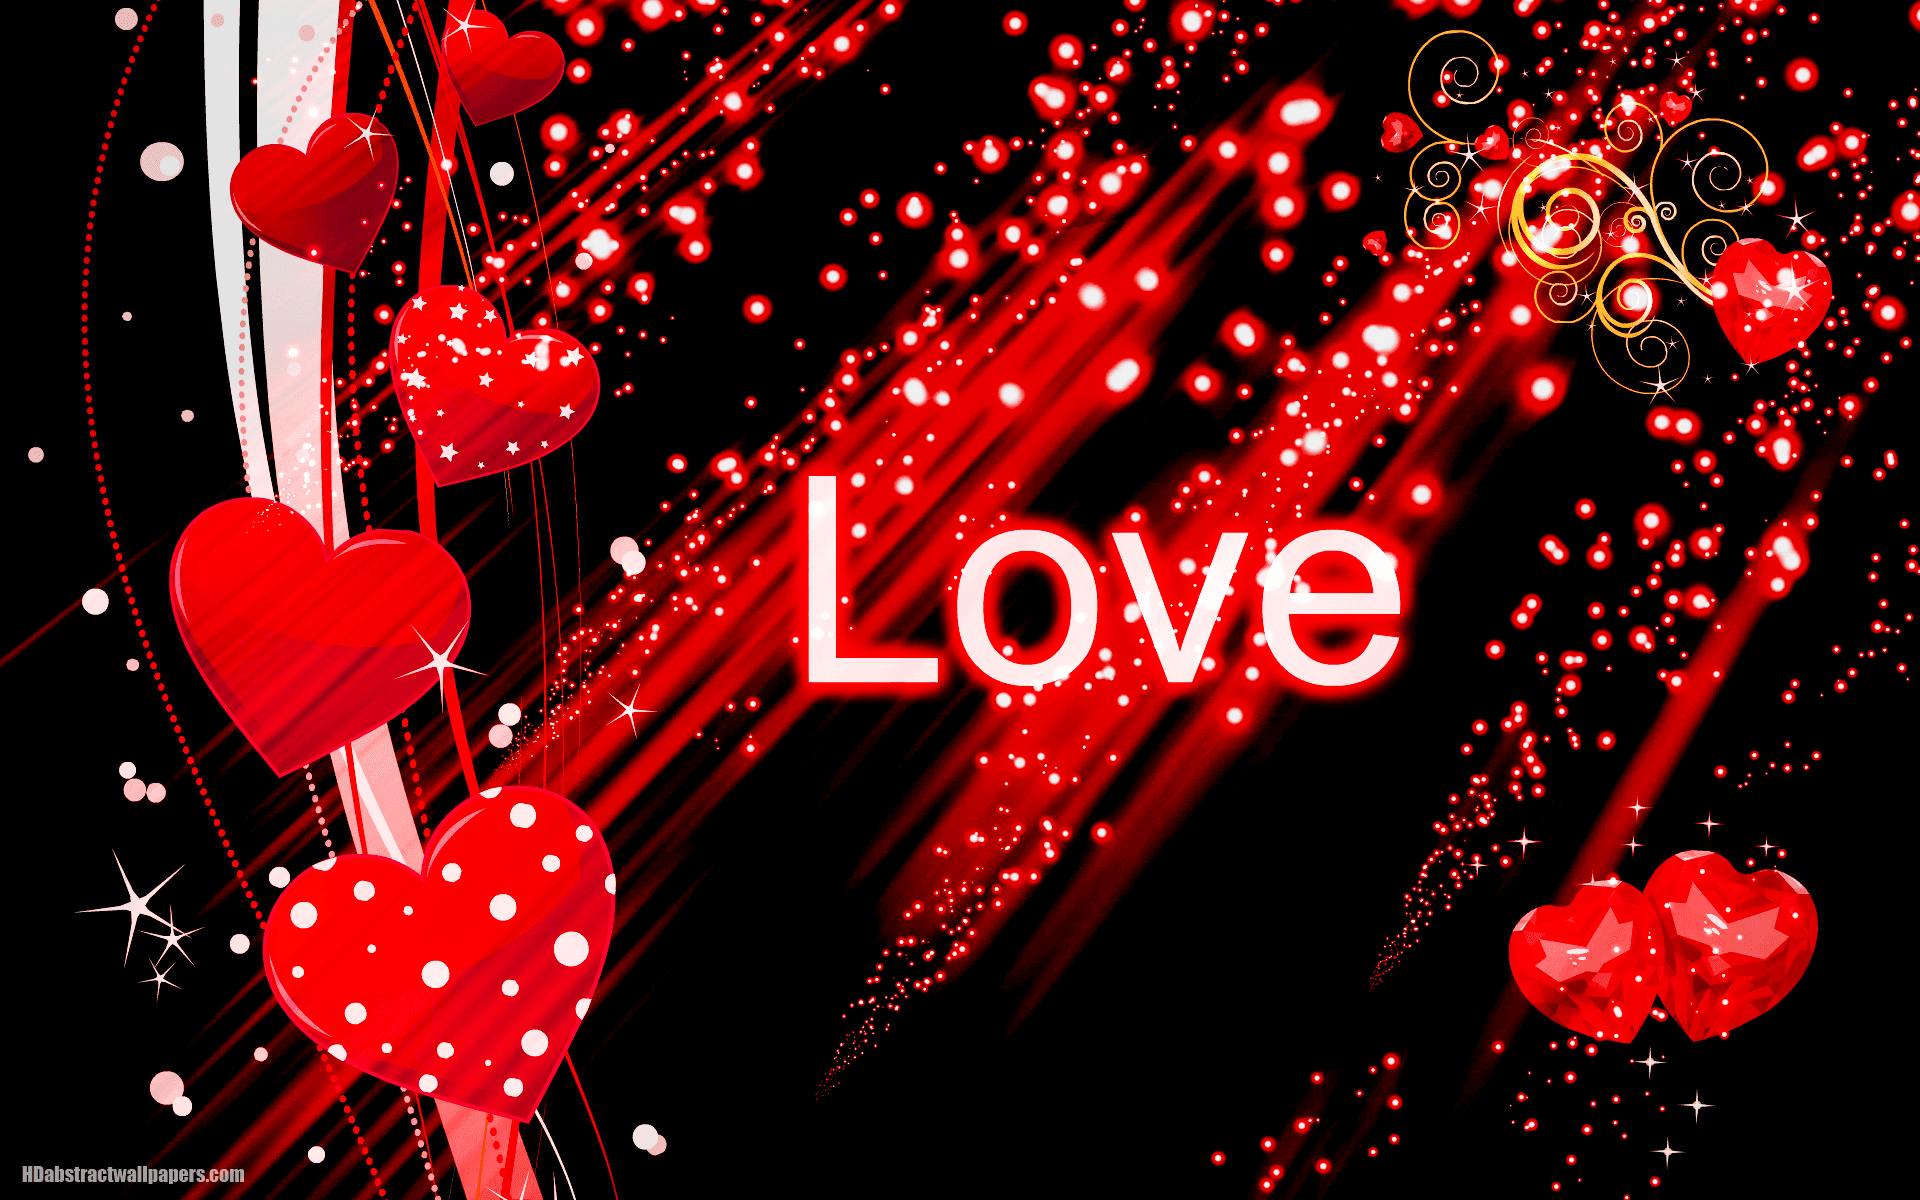 Love Wallpaper Unique : Beautiful Black Love Wallpaper